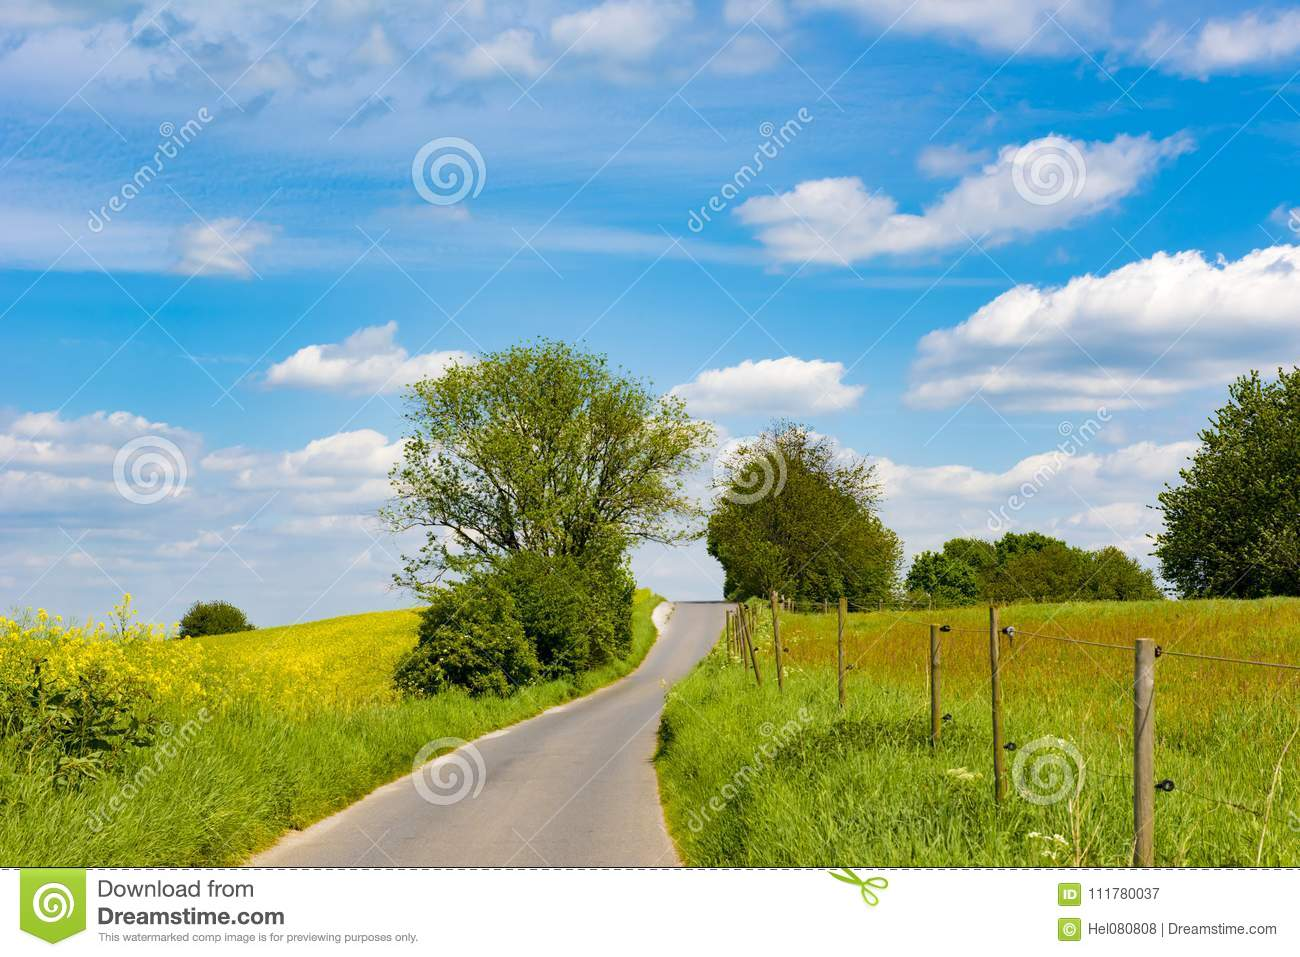 Agrarian fields and meadows with curved path, rural landscape in spring